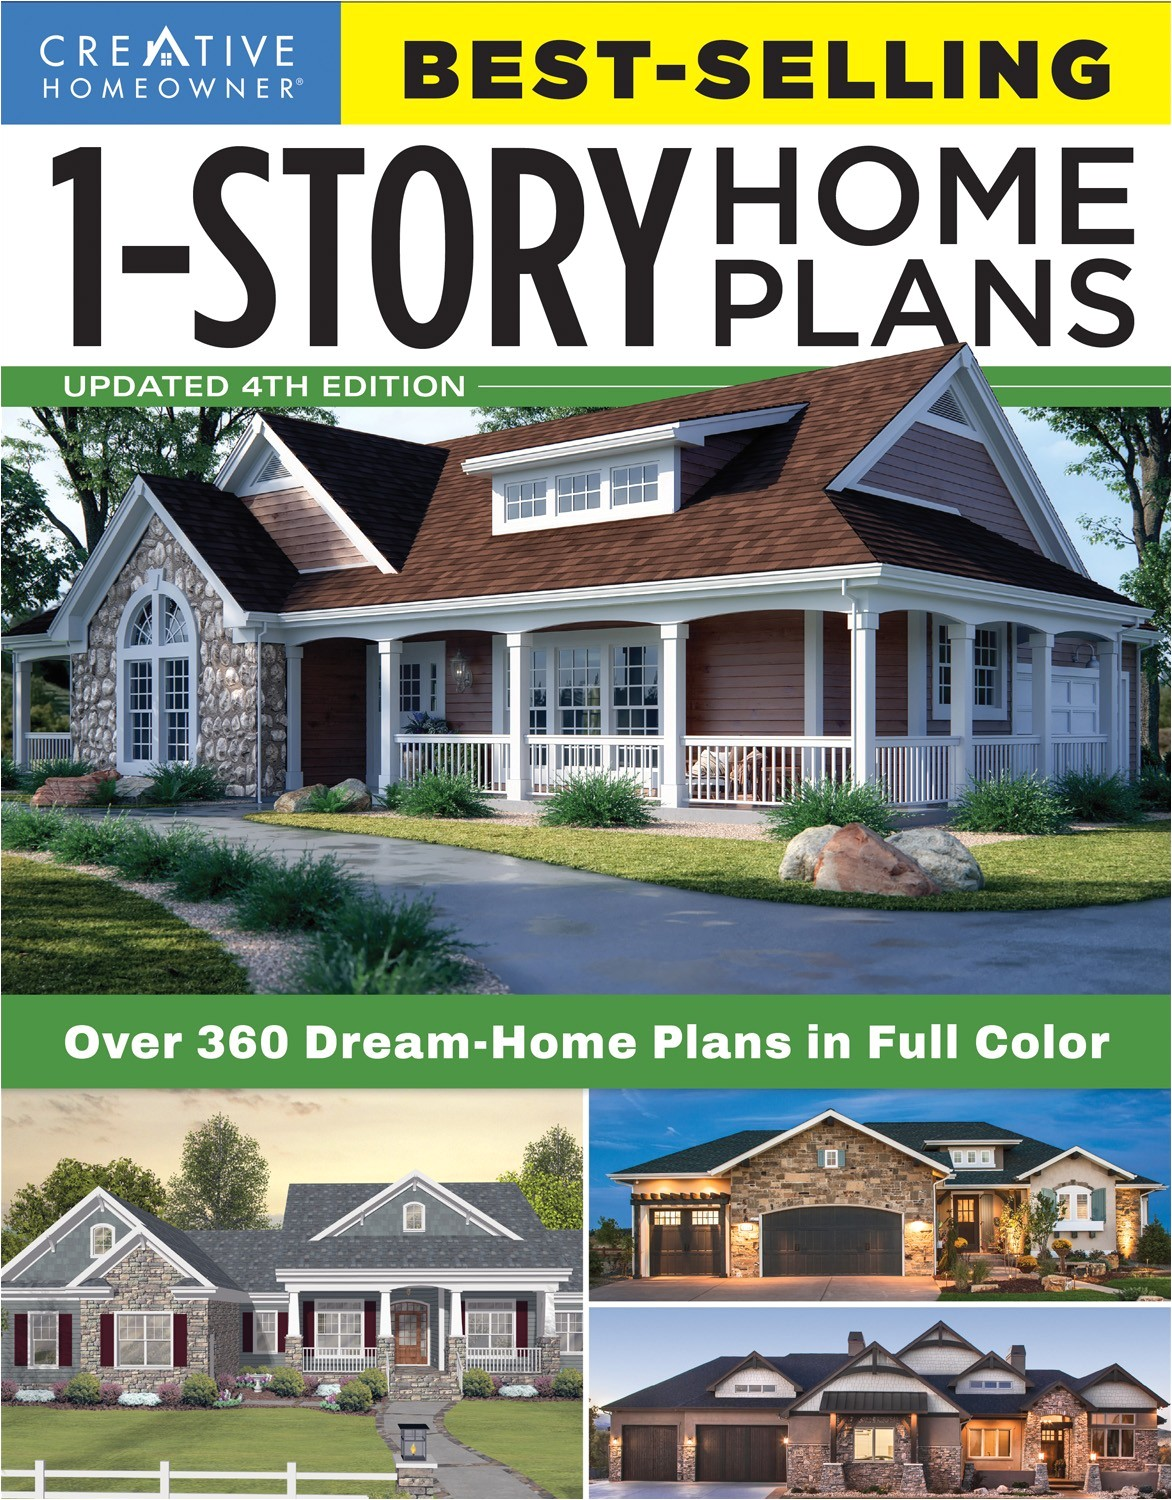 best selling 1 story home plans updated 4th edition